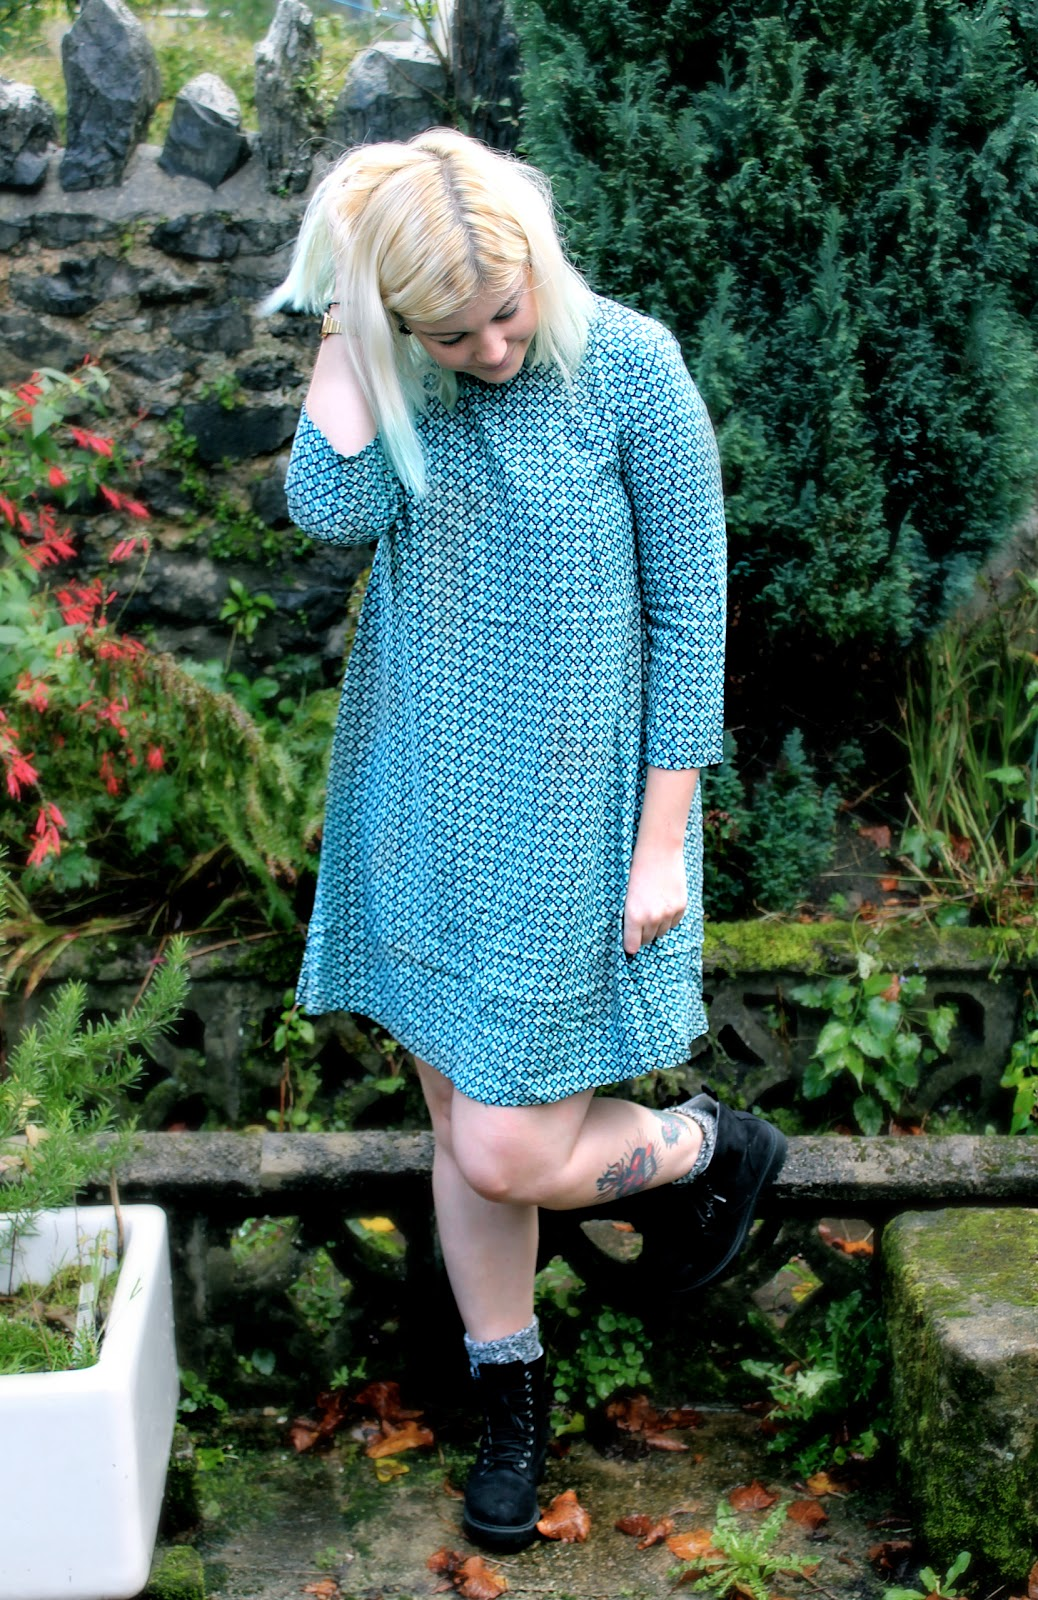 70's style outfit post dress print